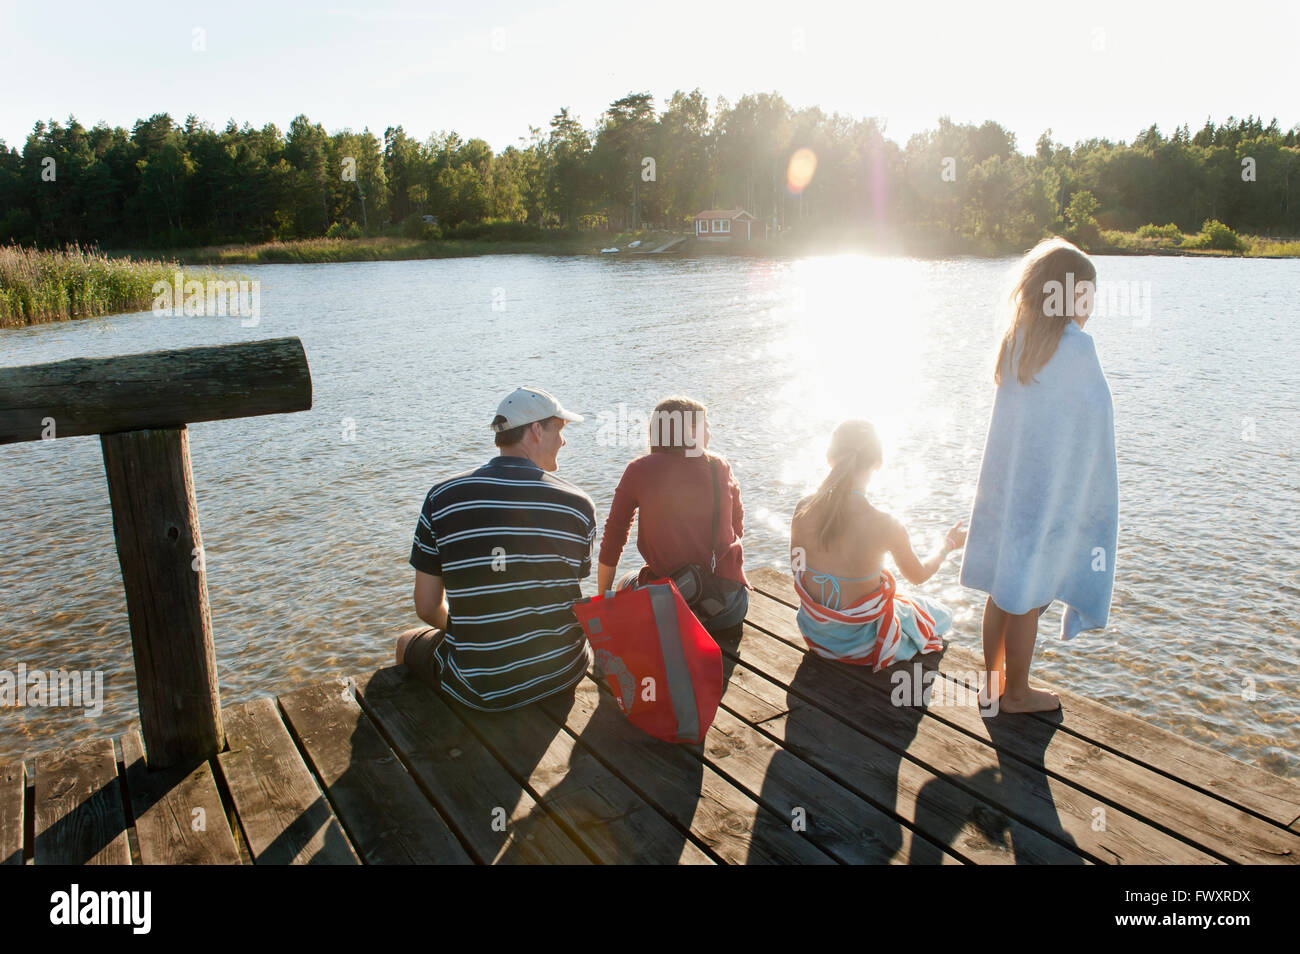 Sweden, Vastra Gotaland, Kallandso, Family with two children (6-7, 12-13) on pier - Stock Image